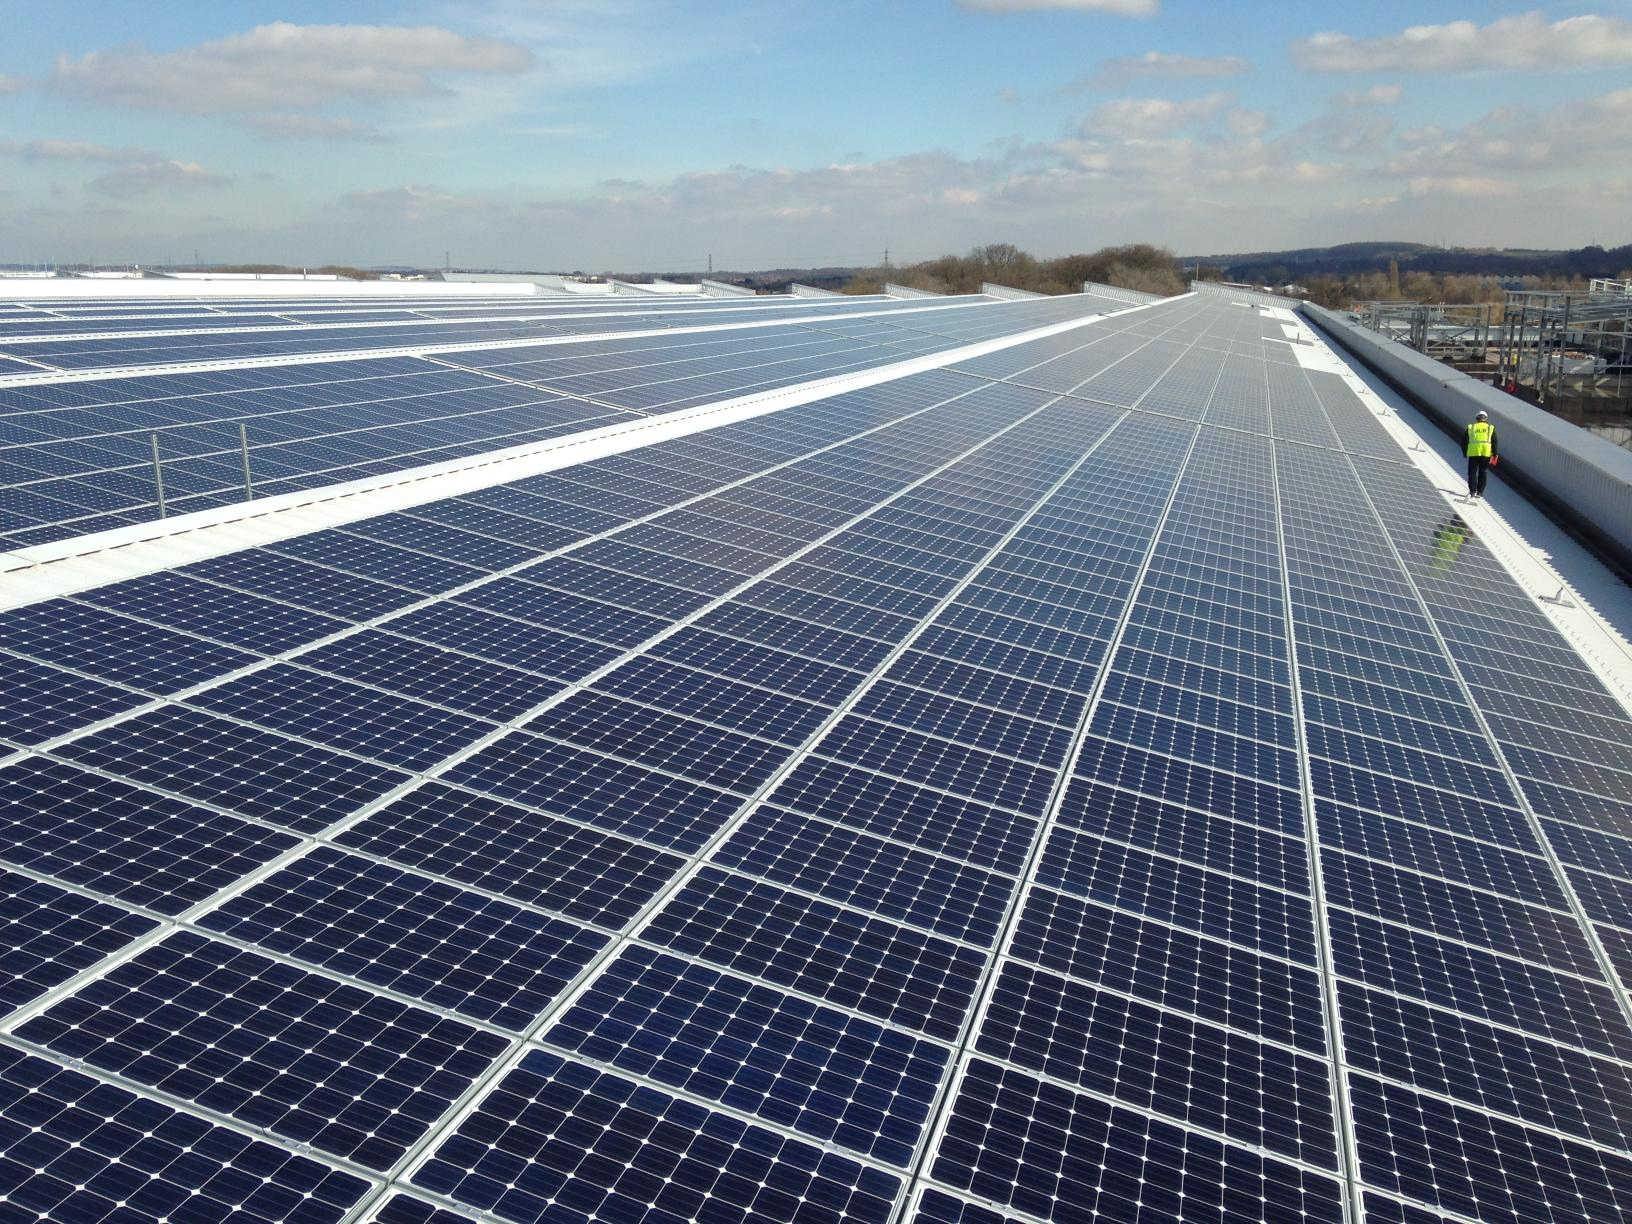 jaguar-land-rover-installs-uk-s-largest-rooftop-solar-panel-array-at-its-engine-manufacturing-centre